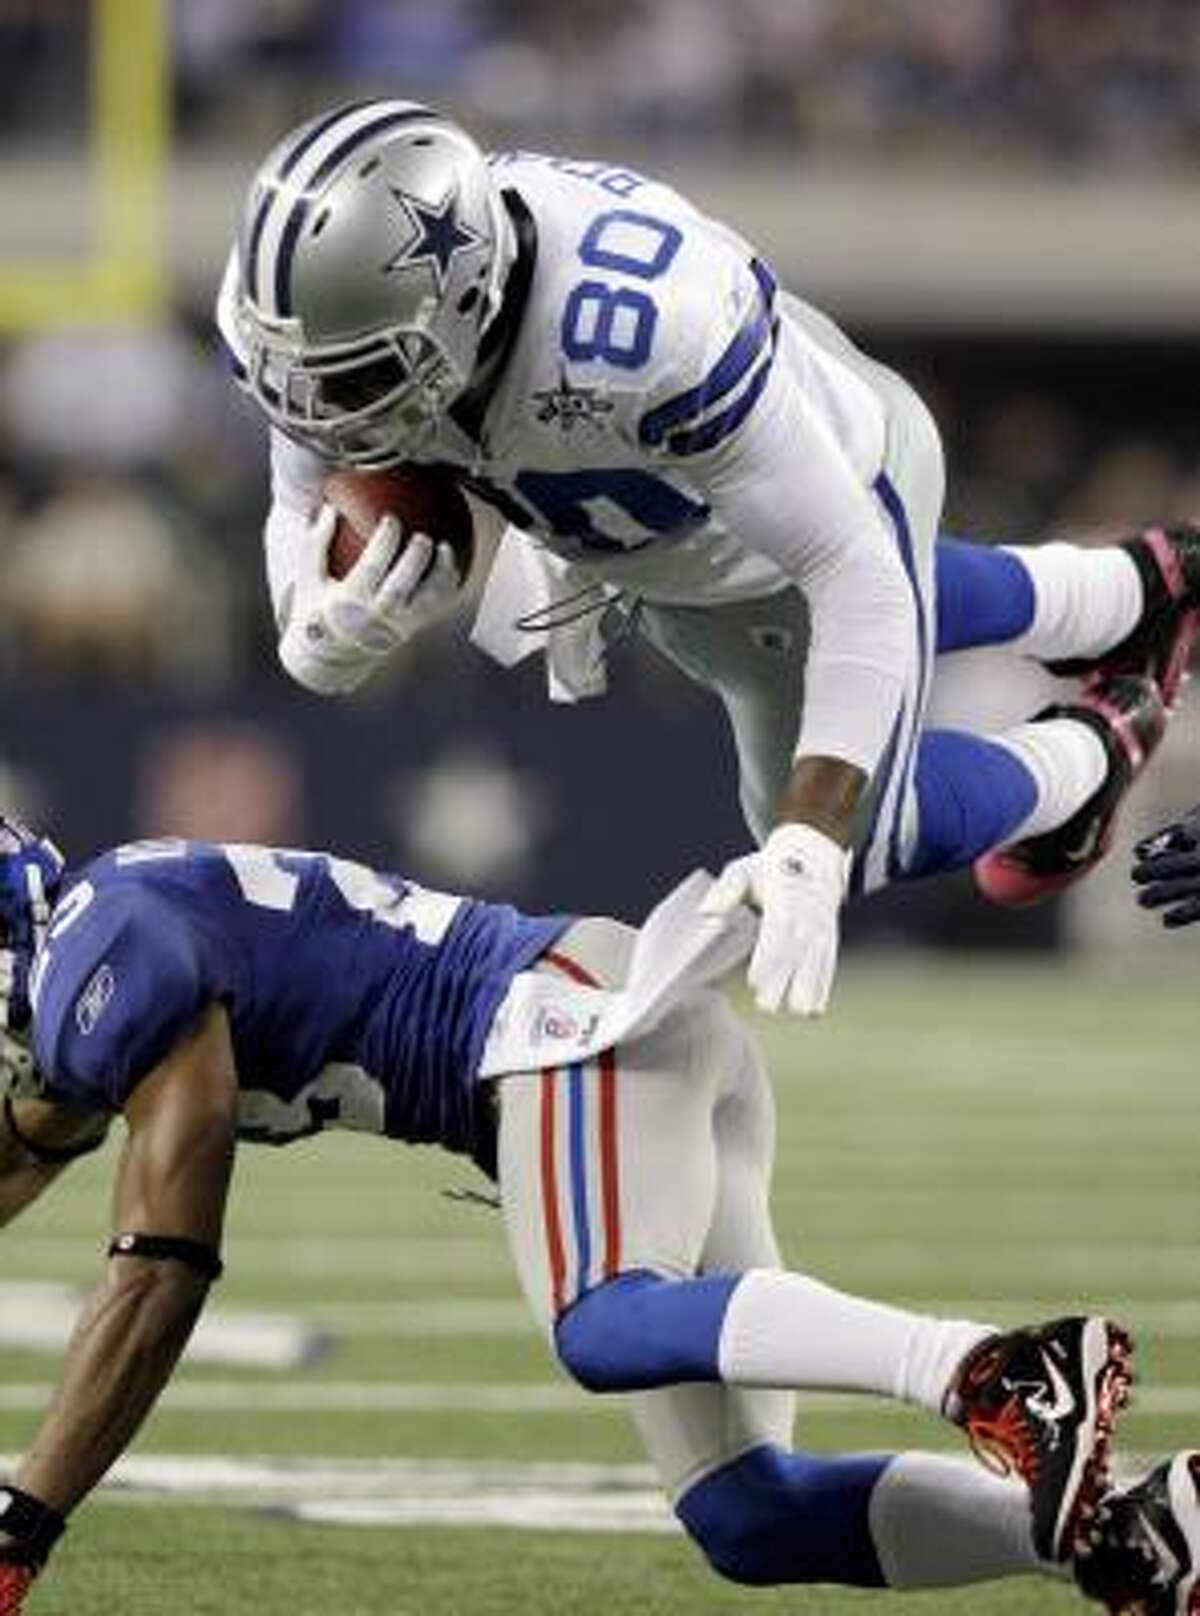 Cowboys tight end Martellus Bennett is upended by Giants cornerback Corey Webster.